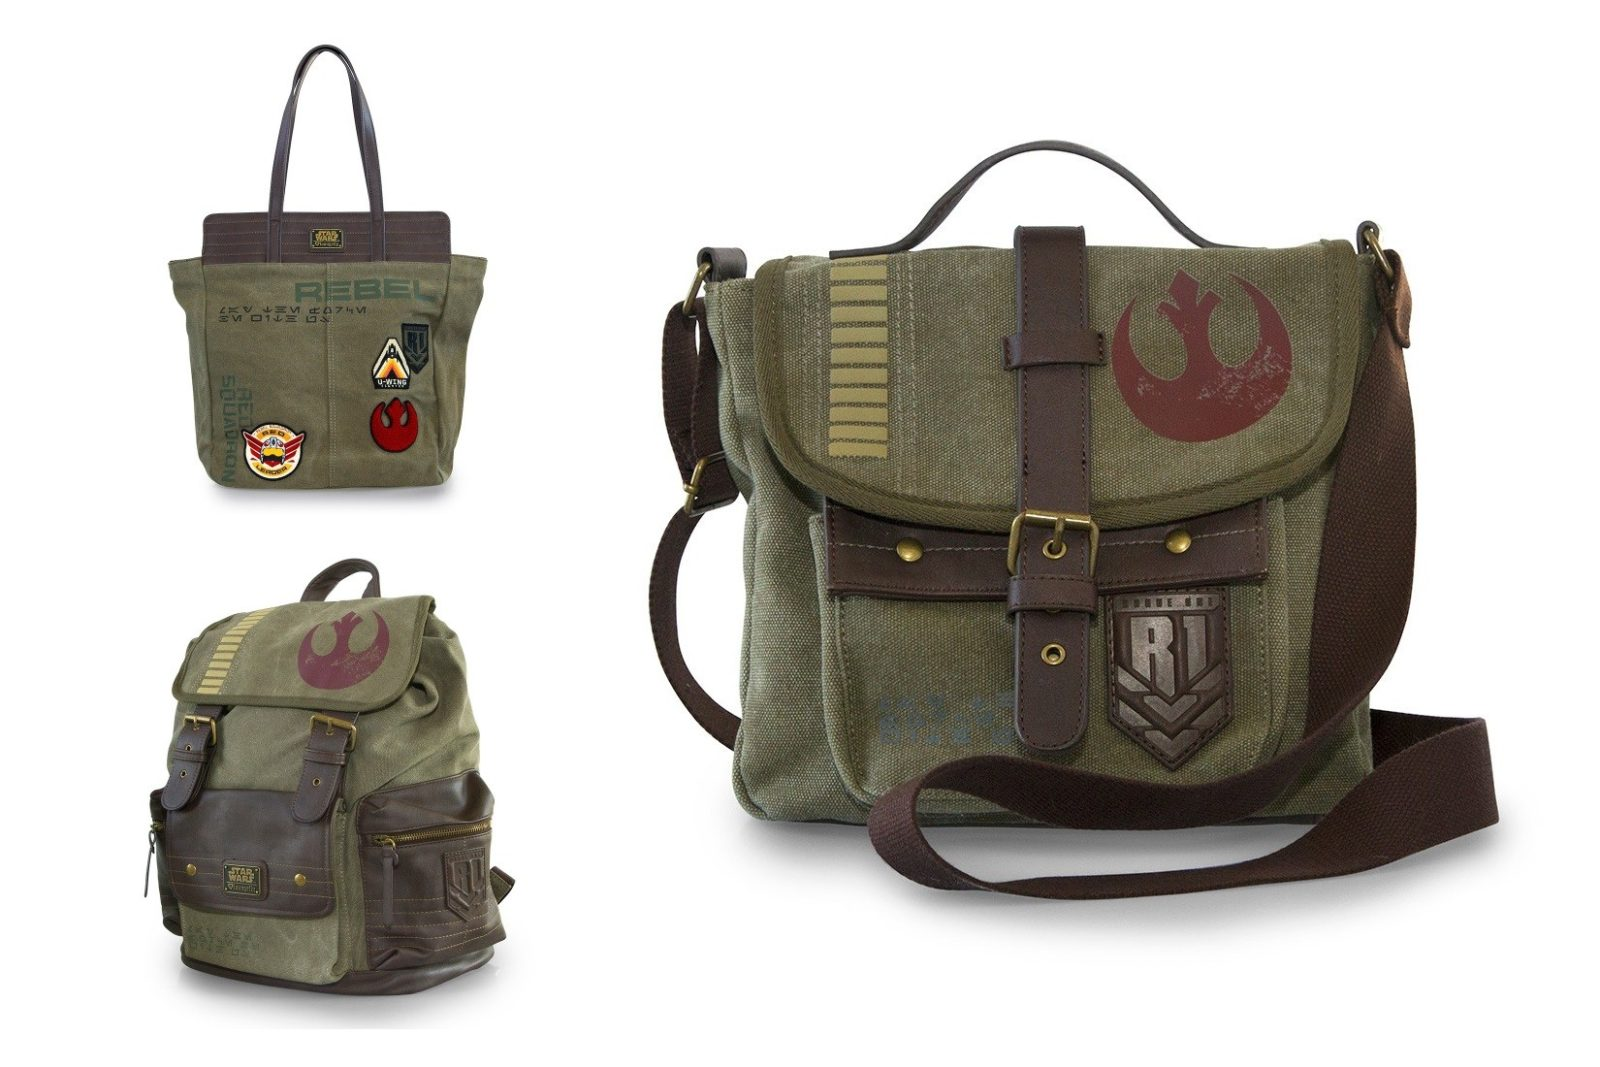 New Loungefly x Rogue One range available!